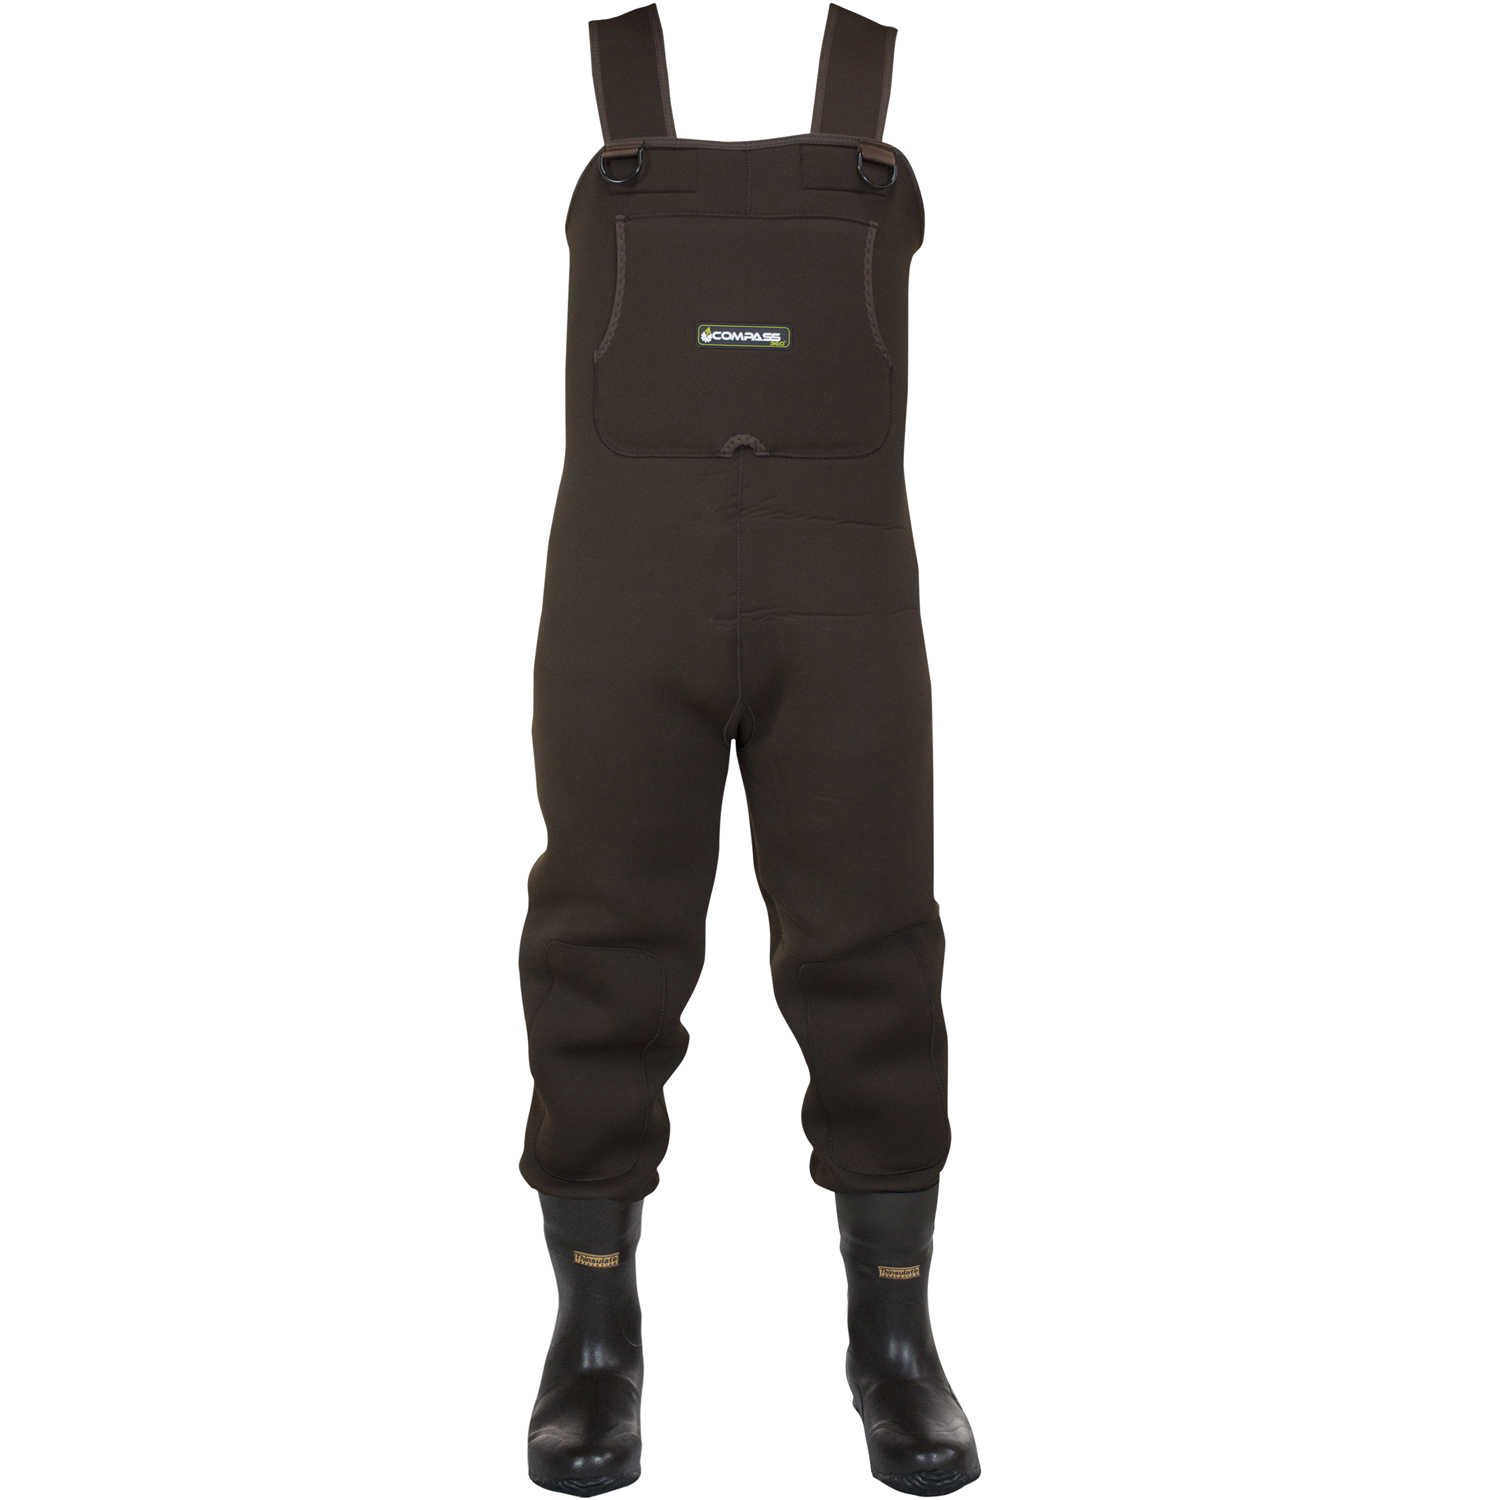 Compass 360 Men's Rogue 3.5mm Neoprene Boot-Foot Chest Waders thumbnail